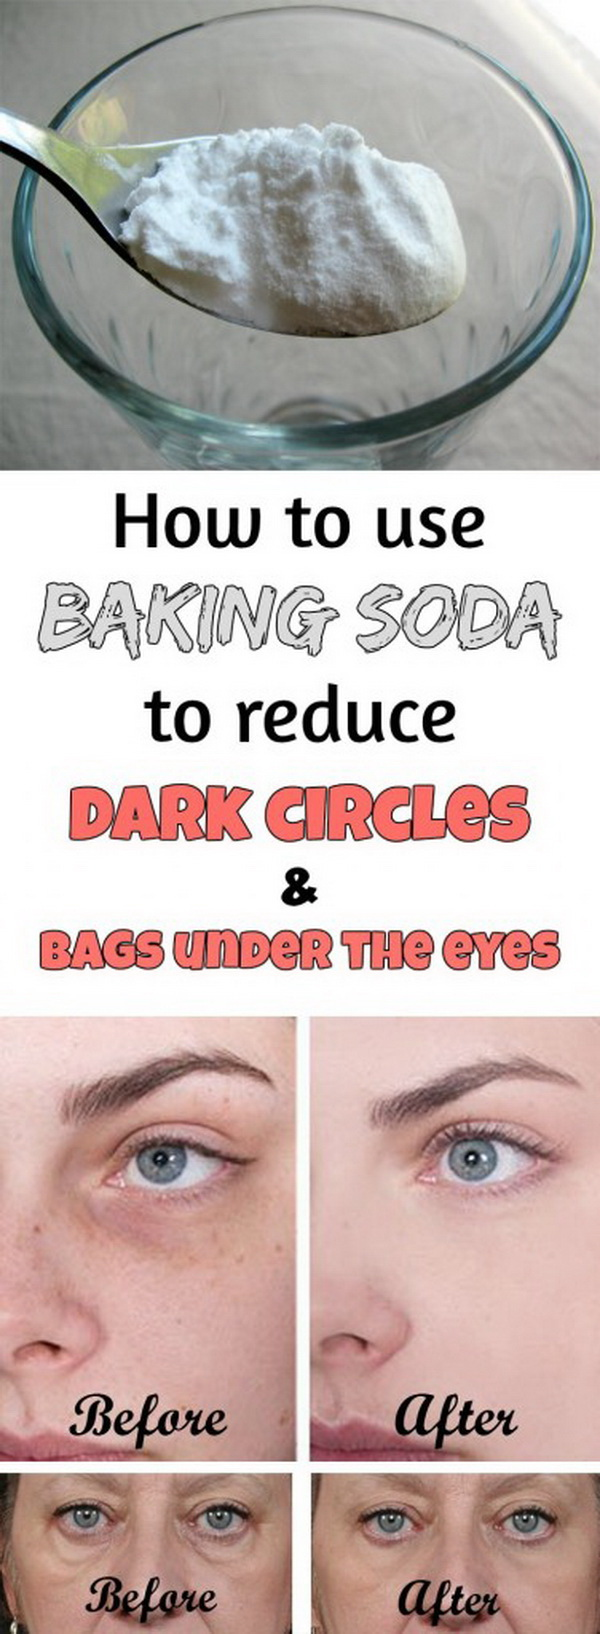 A healthy and fast way to get rid of the annoying dark circles or bags under your eyes with this homemade recipe. What you need is just a teaspoon of baking soda and some hot water!